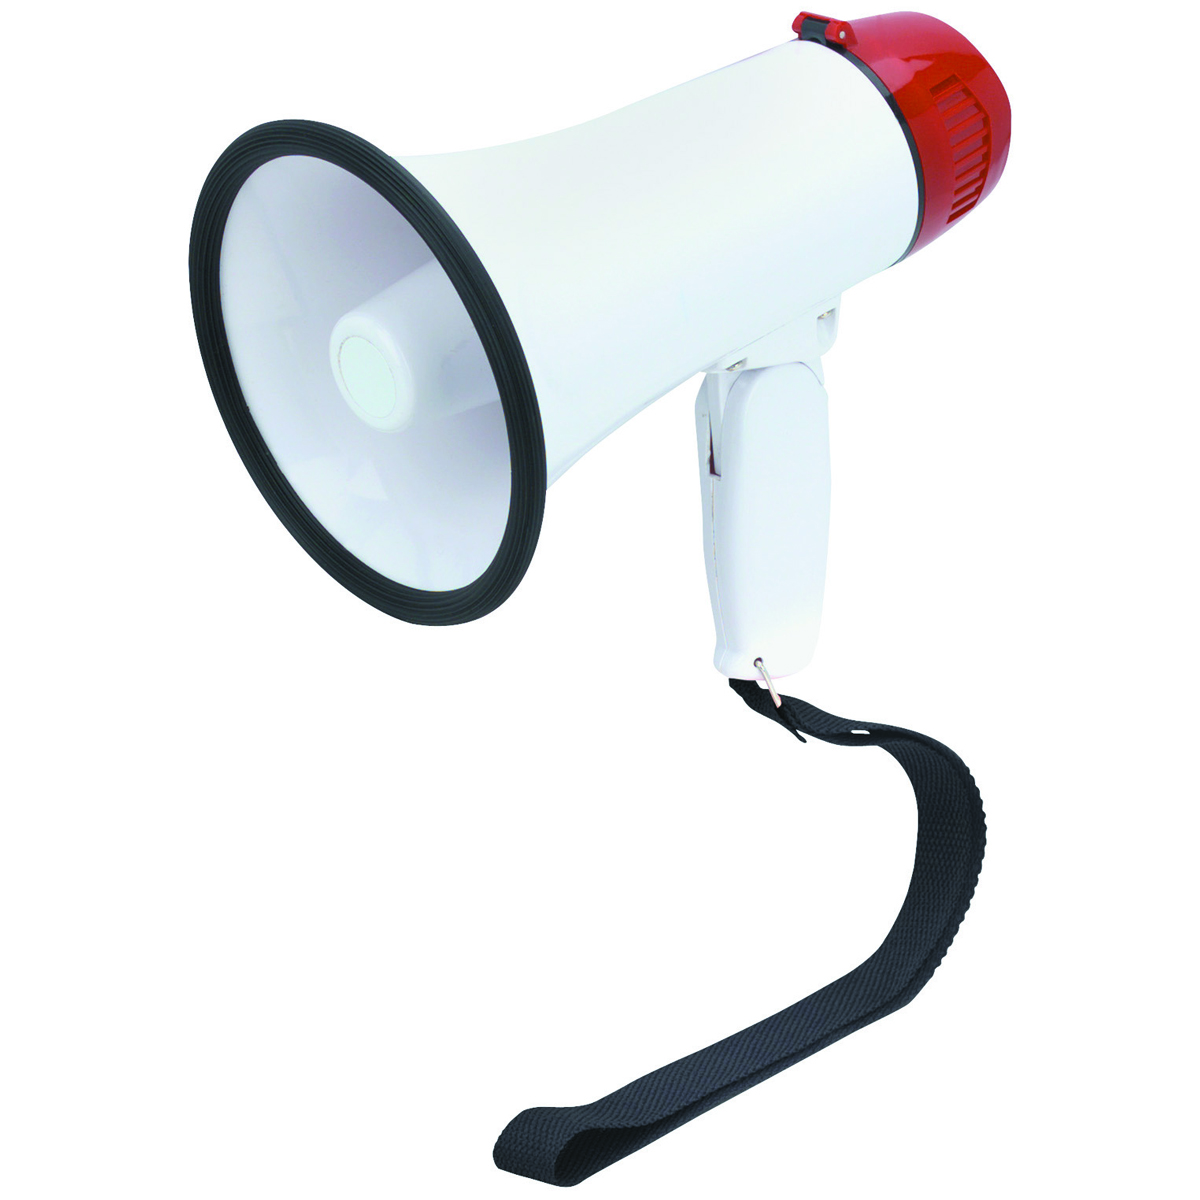 How to extend the speed on Megaphone